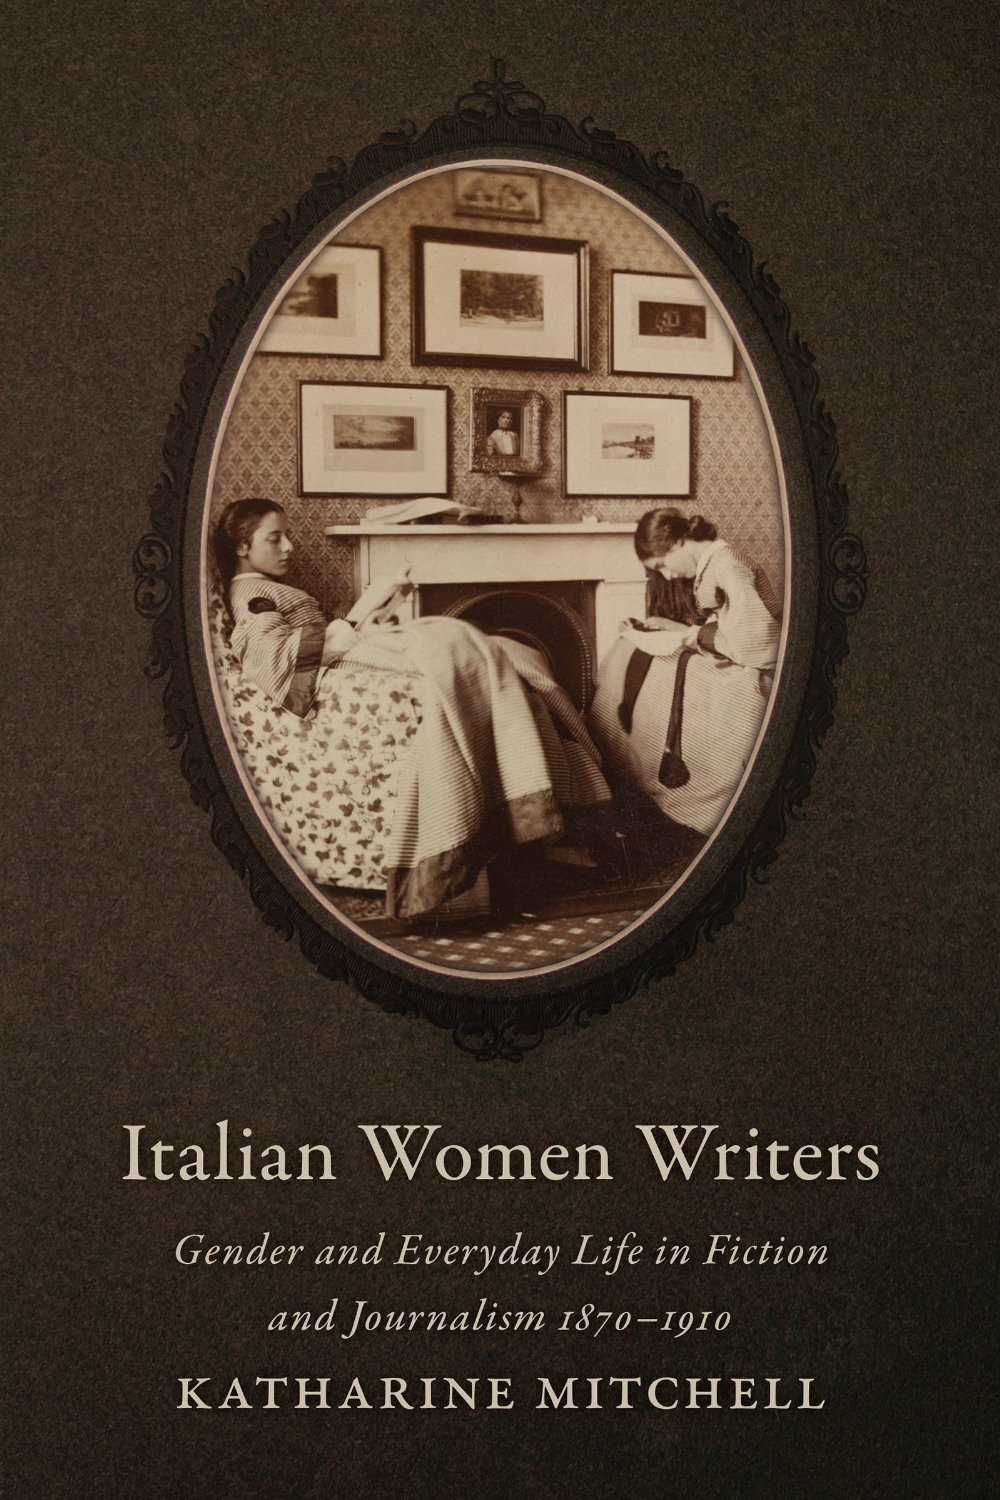 womens writing in italy Read the essential details about florence nightingale that includes images, quotations and the main facts of his life florence's desire to have a career in medicine was reinforced when she met elizabeth blackwell at st bartholomew's hospital in.